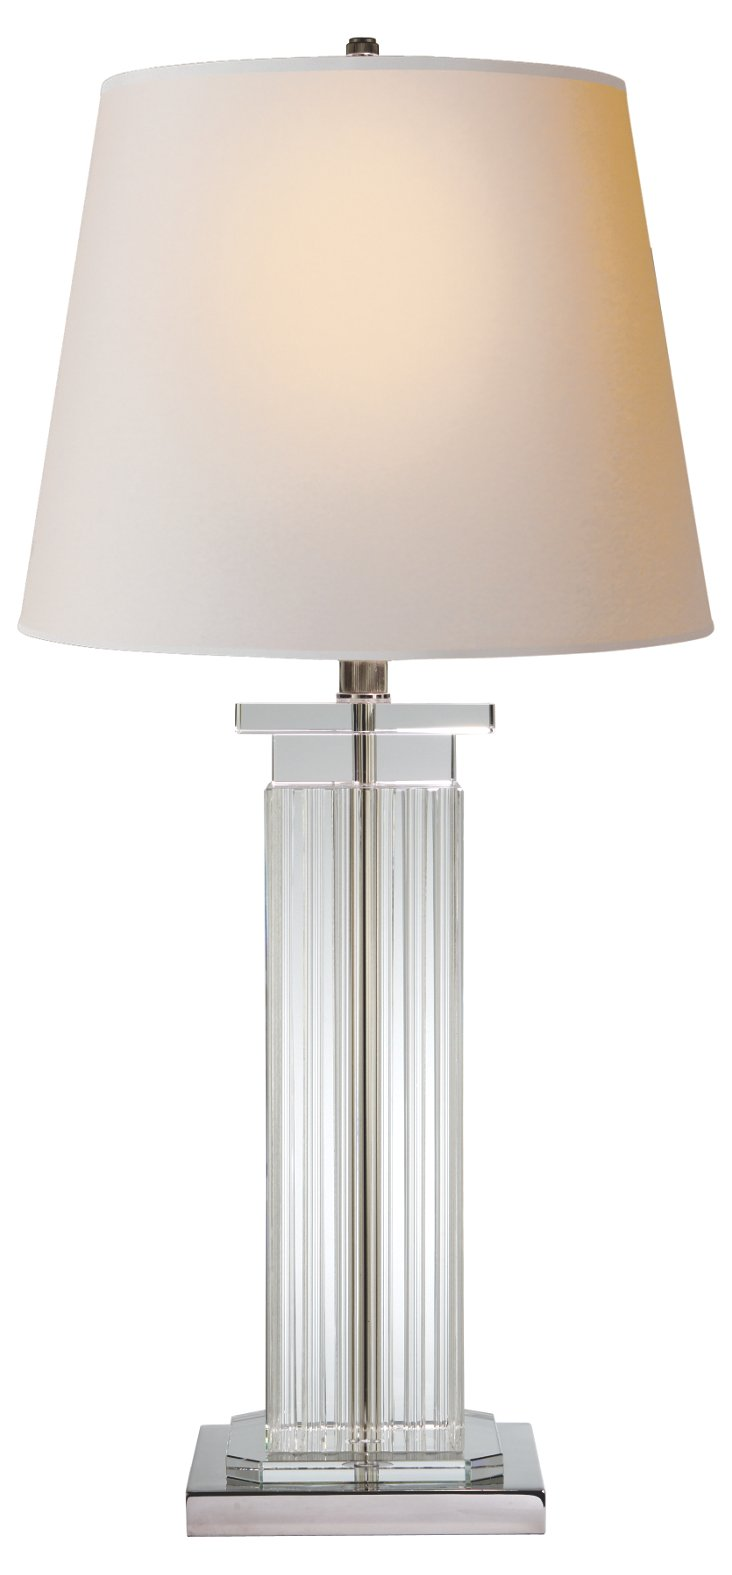 Tivoli Column Table Lamp